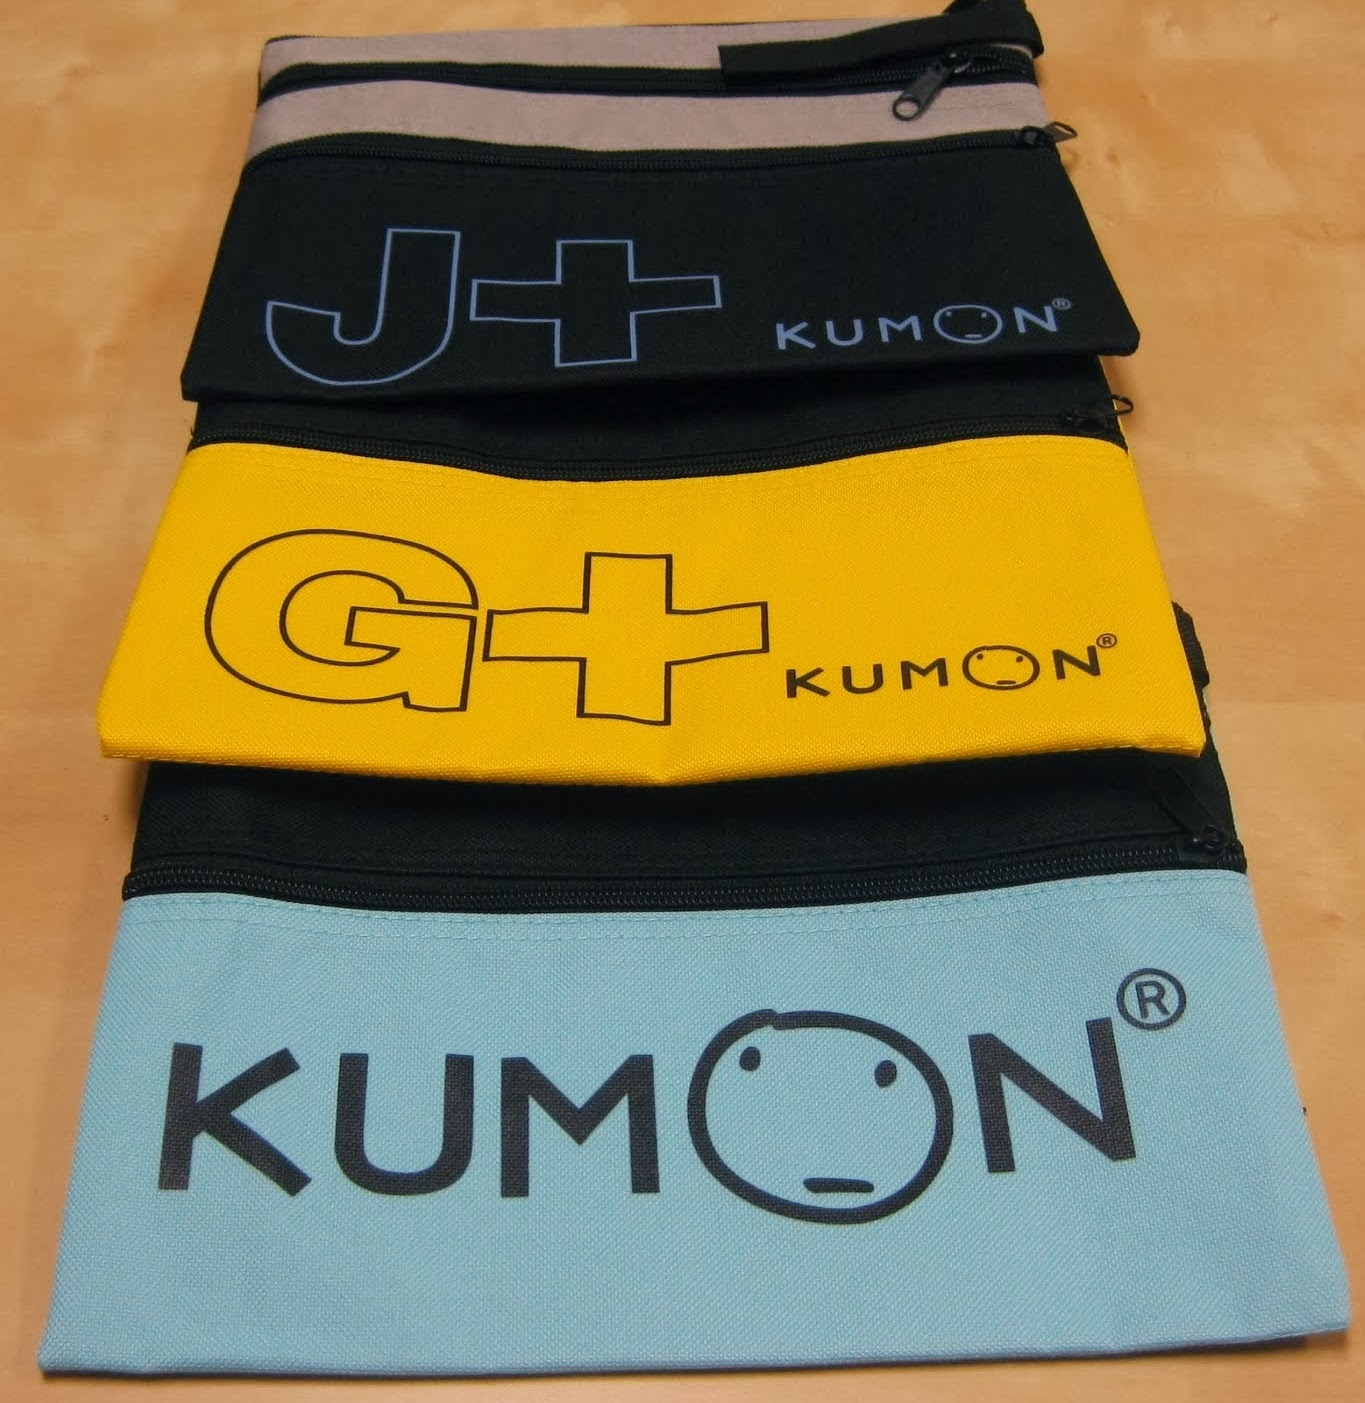 What Is Kumon Does Kumon Help Students Grow Their